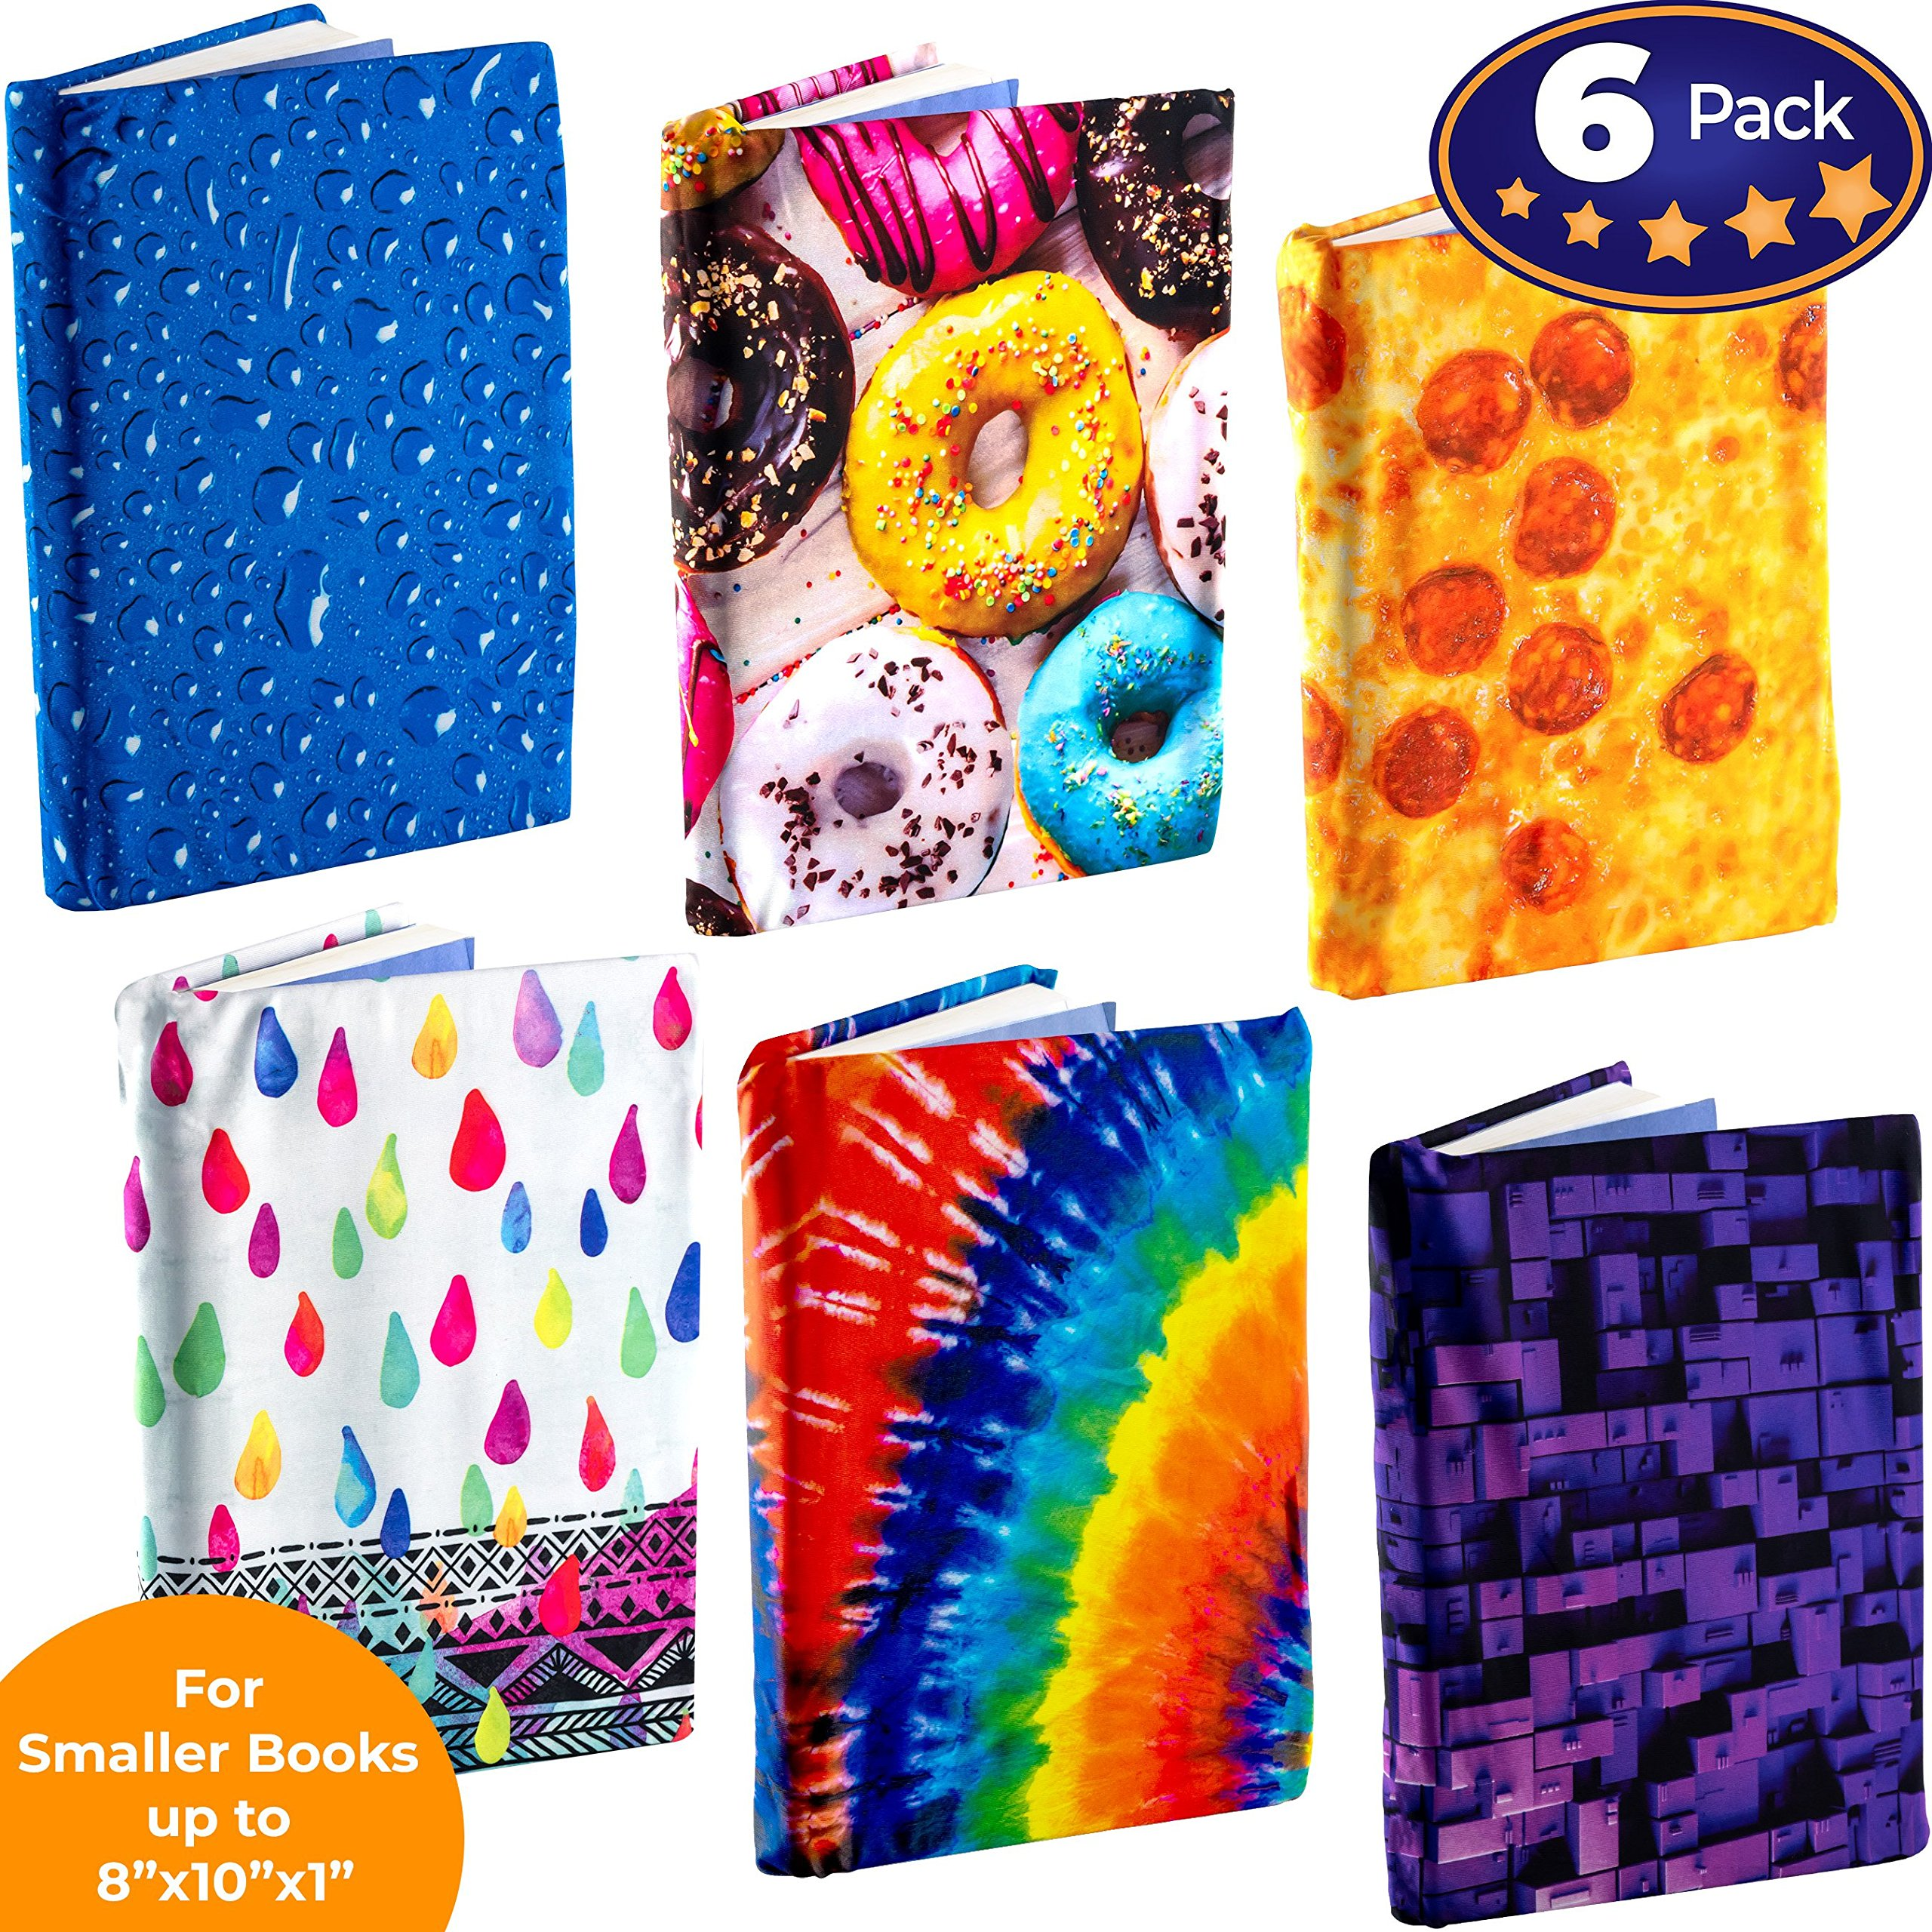 Book Sox Stretchable Book Cover: Standard Size 6 Design Print Pack. Fits Smaller/Thinner Hardcover Textbooks up to 8x10. Adhesive-Free, Nylon Fabric Protector. Washable and Reusable School Supply